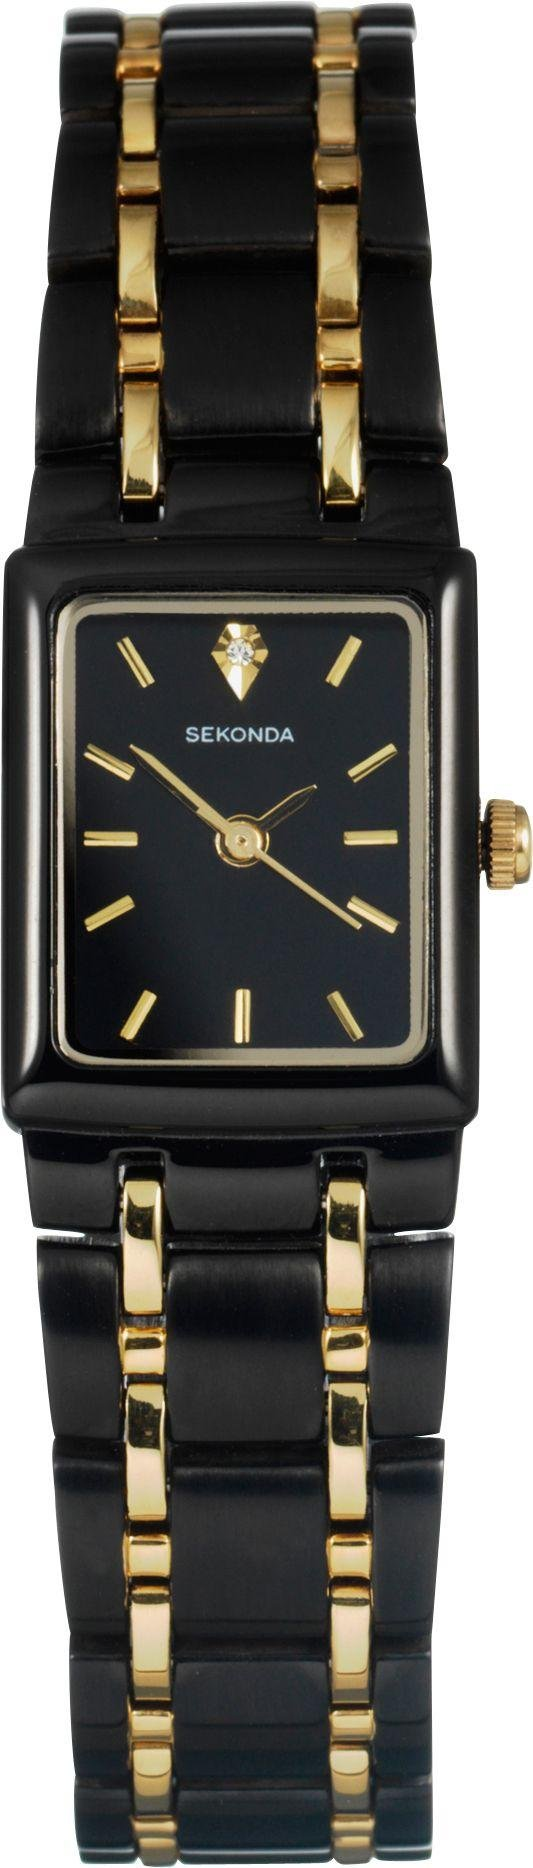 Sekonda Ladies' Two Tone Bracelet Watch